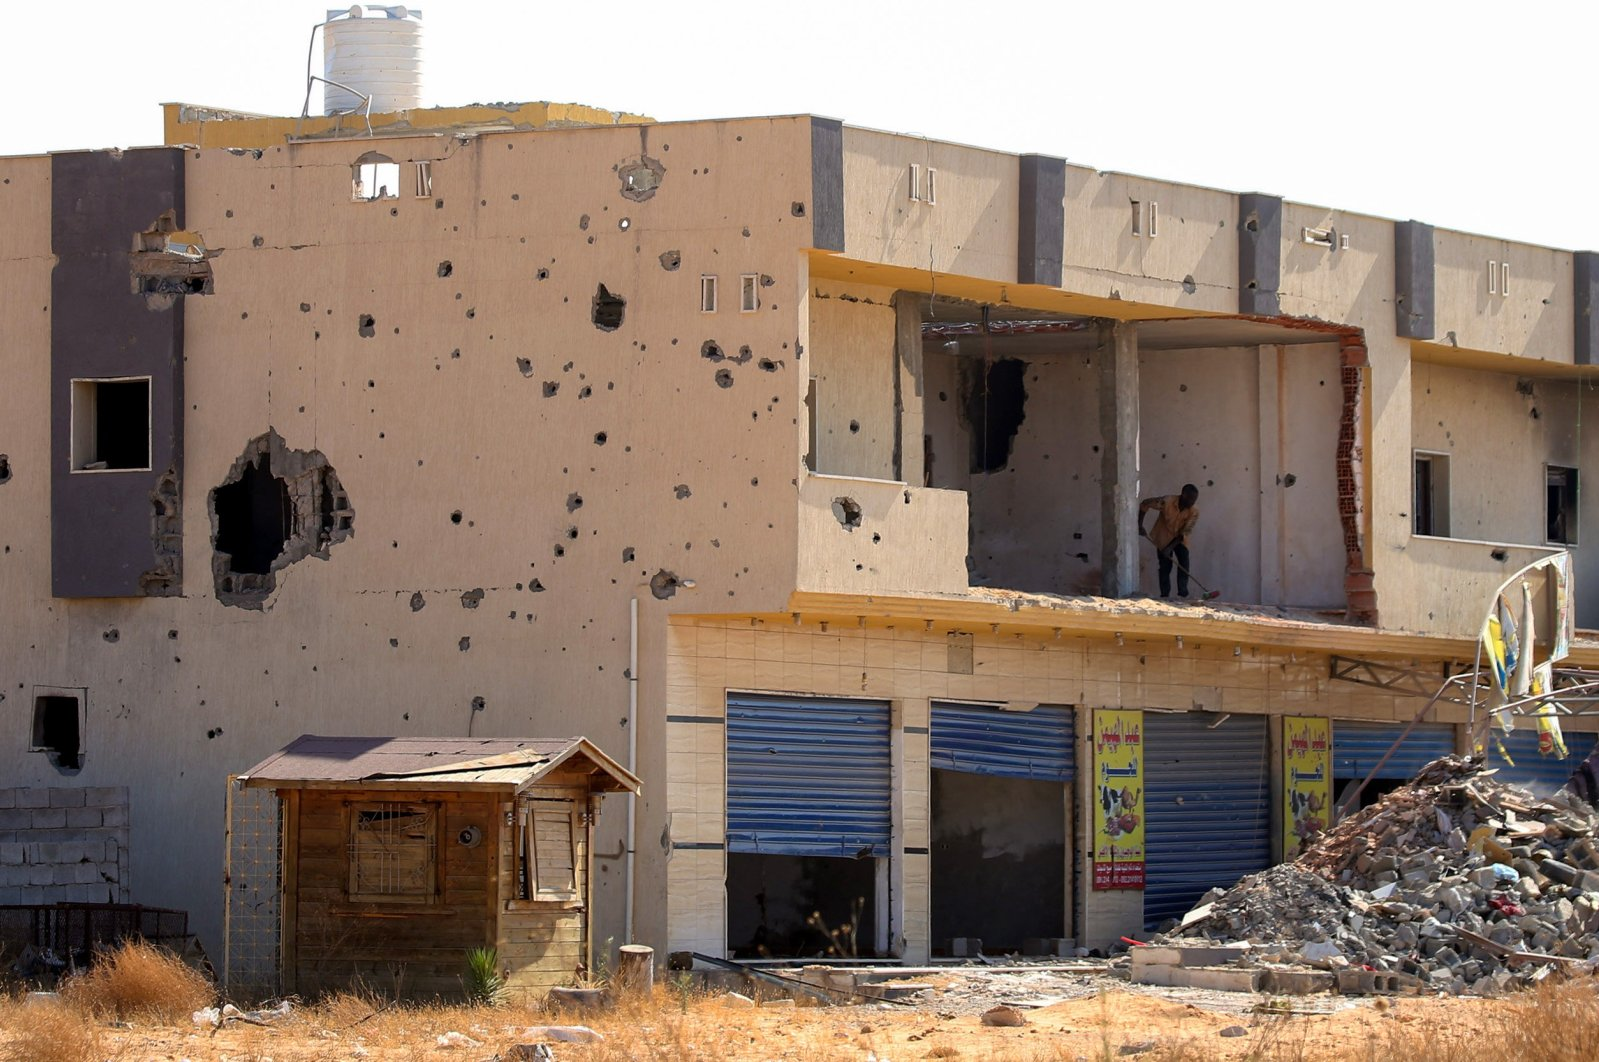 A business, damaged during the 14 months of fighting between the U.N.-recognized Government of National Accord (GNA) and forces loyal to putschist Gen. Khalifa Haftar, is seen in a southern neighborhood of the capital Tripoli, Libya, July 9, 2020. (AFP Photo)